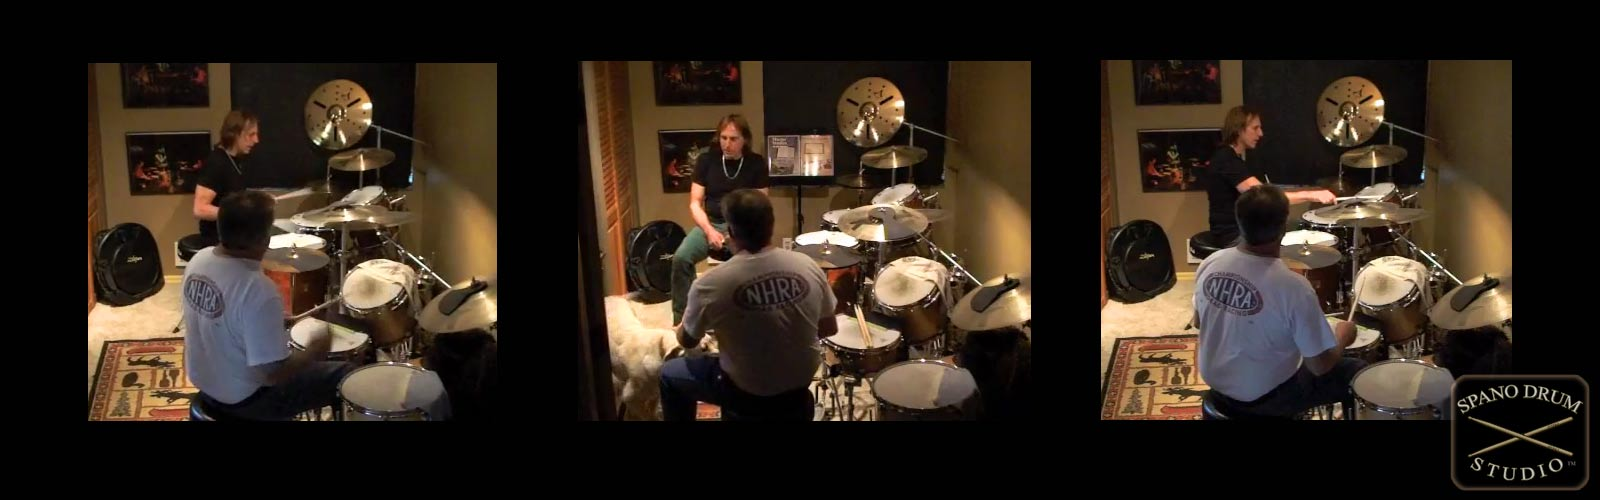 Rick Spano - Seattle Drum Lessons